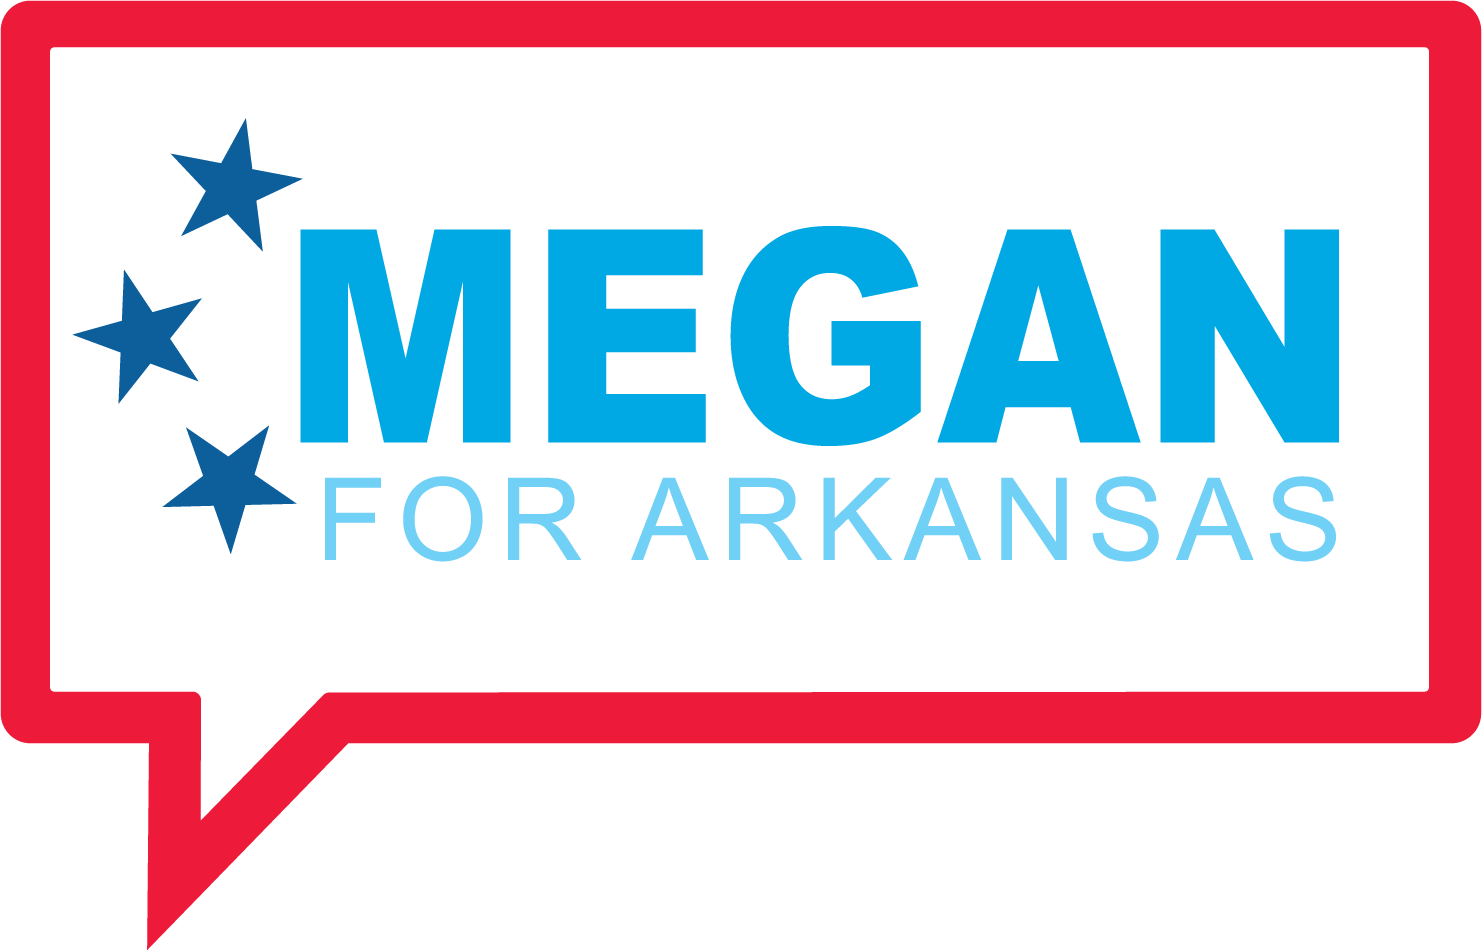 Megan for Arkansas